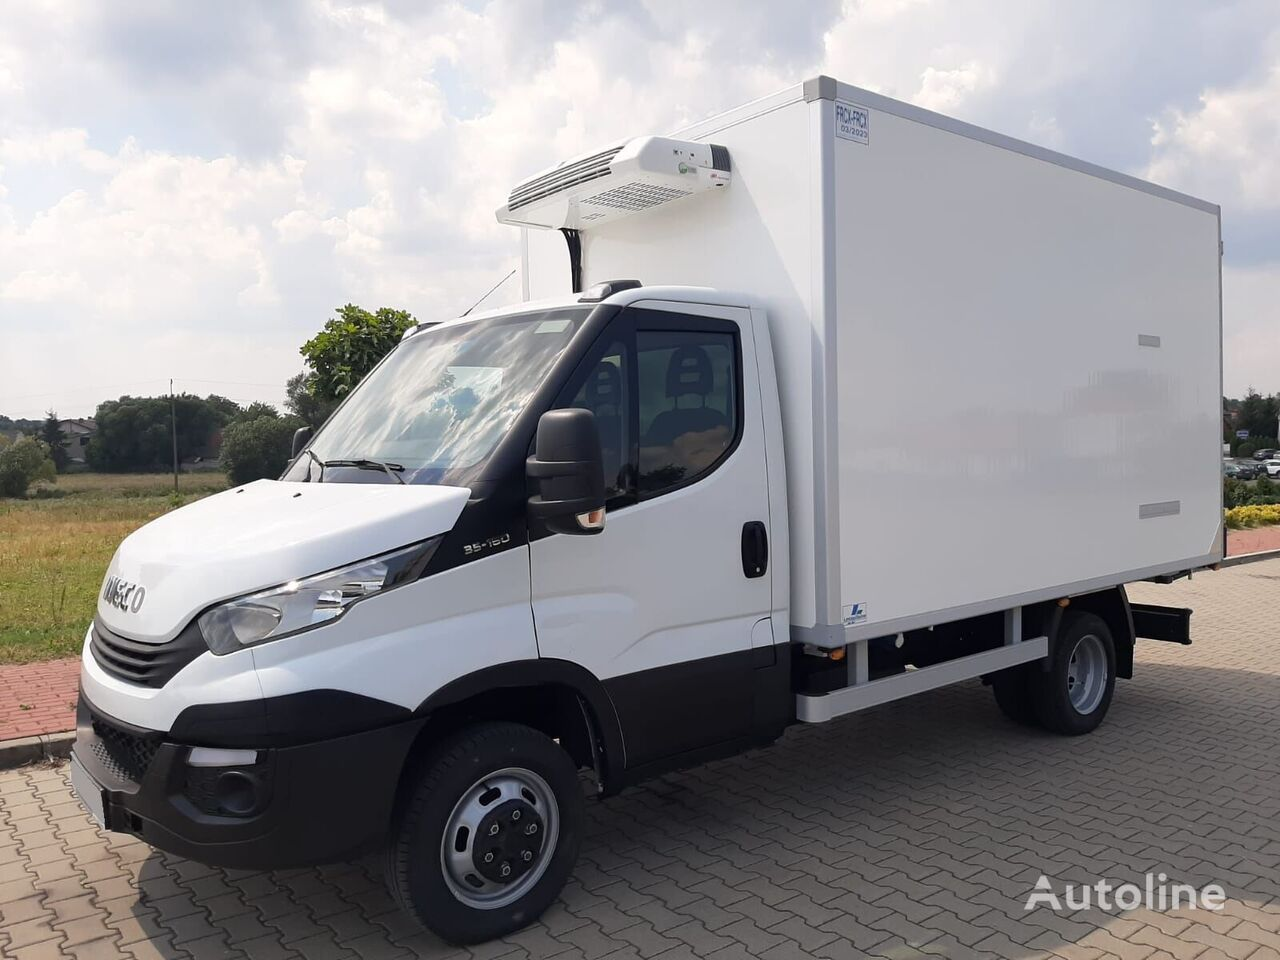 IVECO Daily 35C16 refrigerated truck < 3.5t